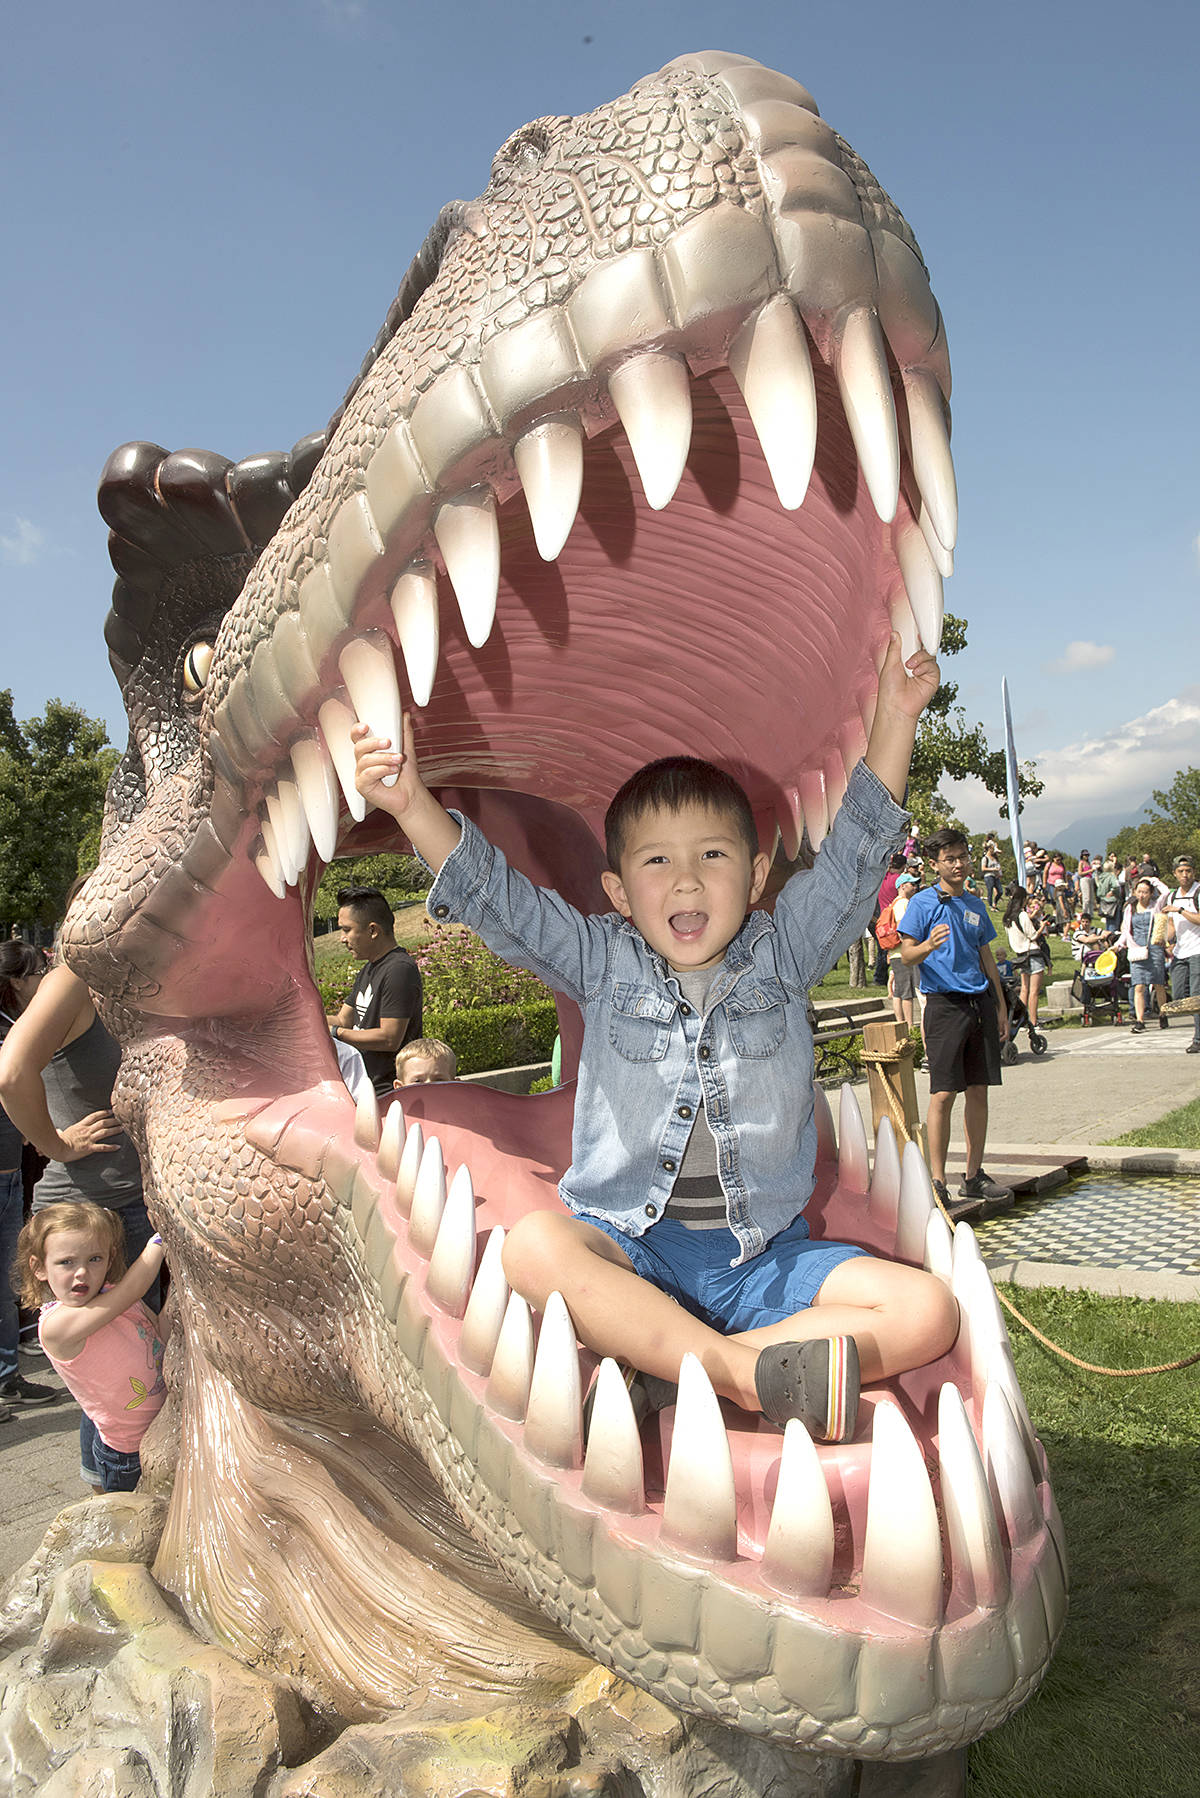 Say cheese: Three-year-old Hugo Simon of Langley posed inside the mouth of a T-Rex during his visit to the PNE Fair's Dinosaur Stomp. The exhibit features 15 spectacular dino's that roamed the earth during the jurassic and cretaceous periods. The exhibit is open 11 a.m to 11 p.m. daily. (PNE/Special to the Langley Advance Times)